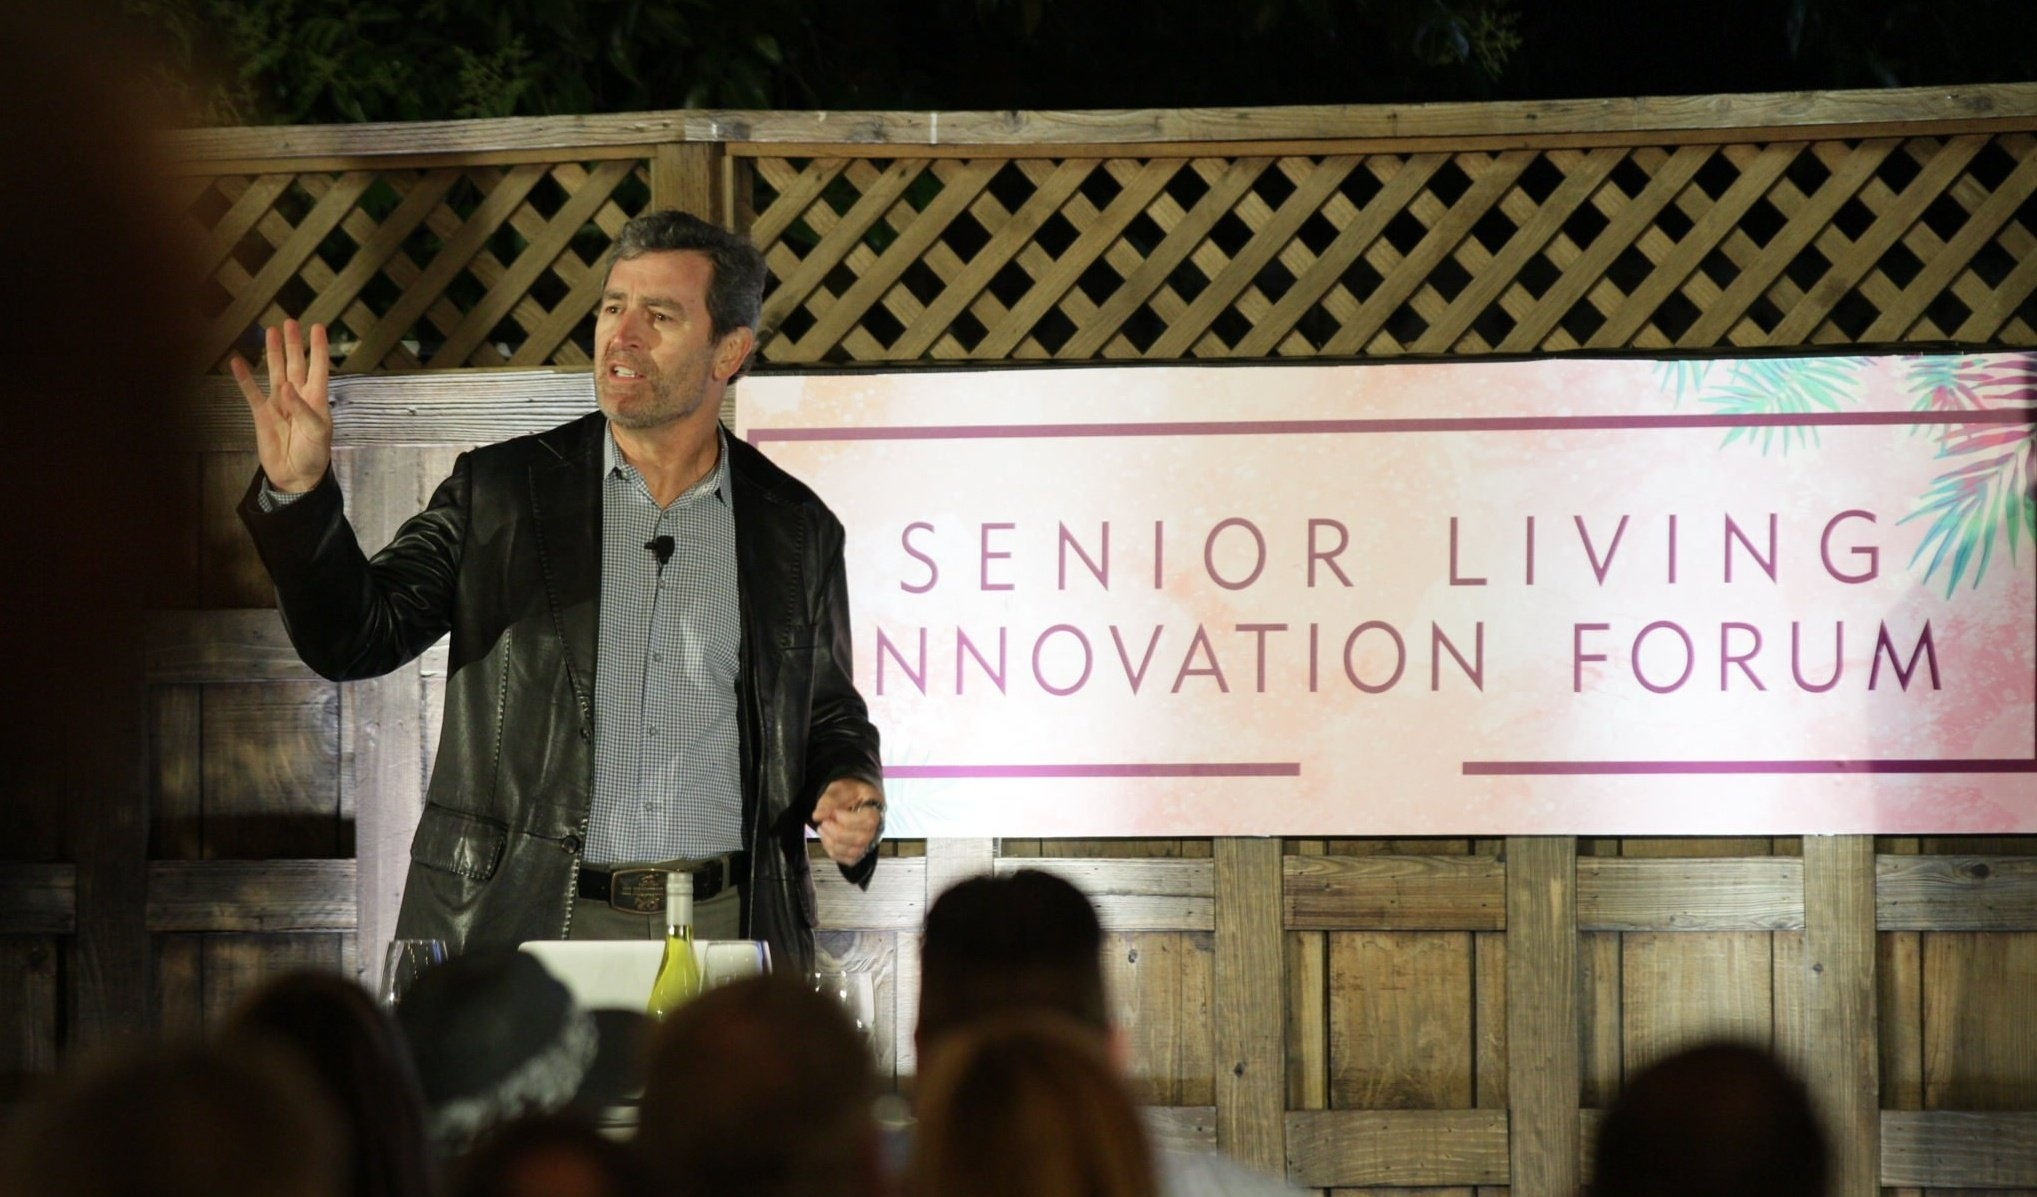 Ken Schmidt of Harley Davidson talking at Senior Living Innovation Forum 2018-074612-edited-245623-edited